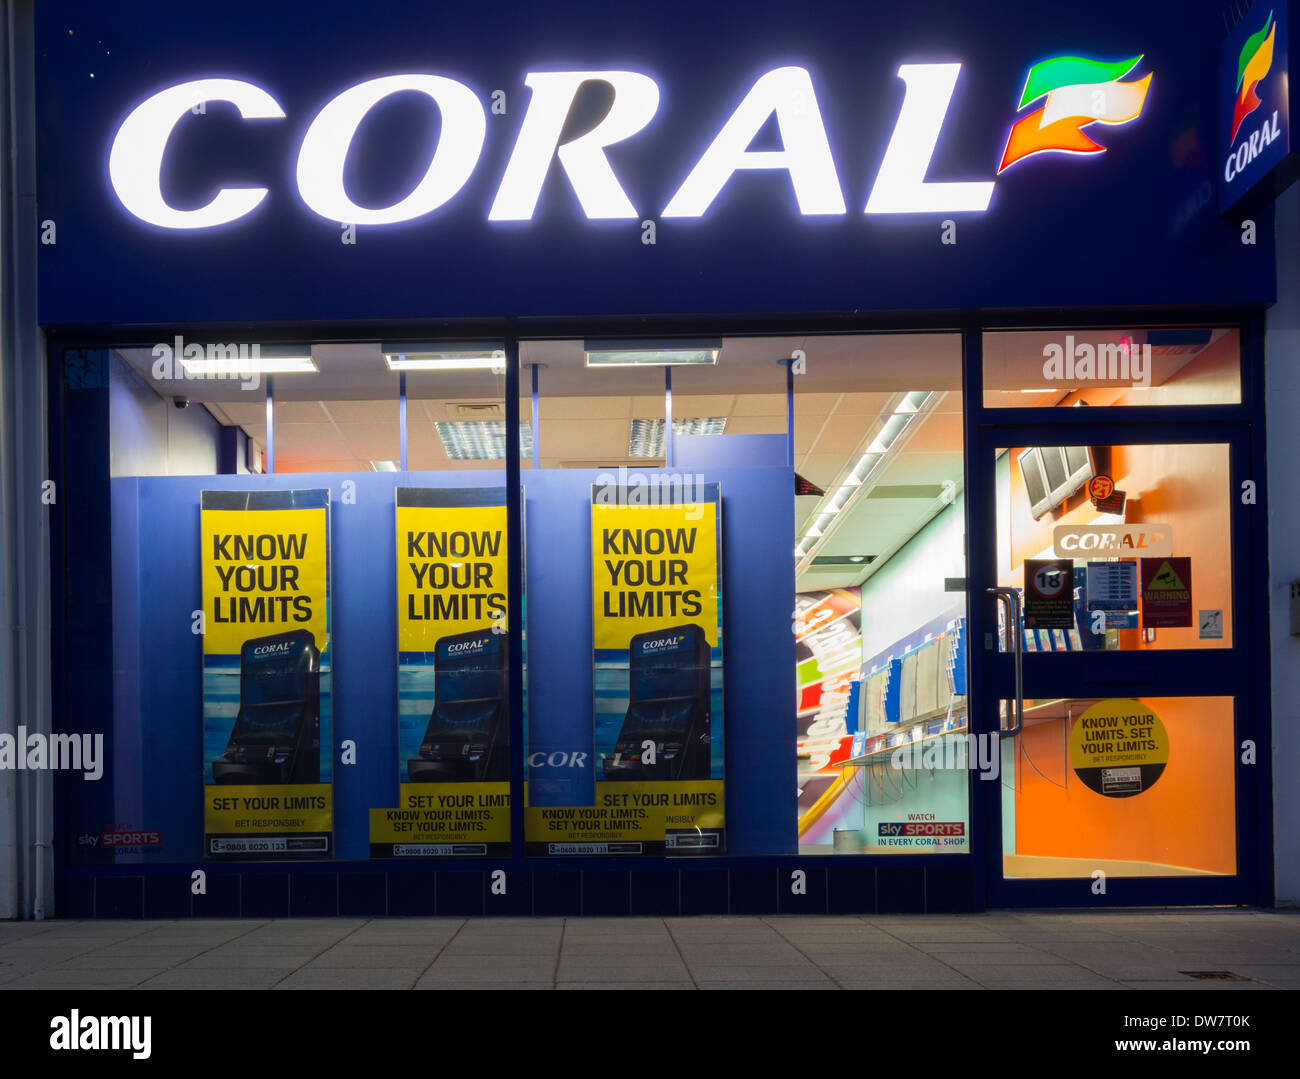 Gamble responsibly posters showing national gambling helpline number in Coral Bookmakers. Stock Photo